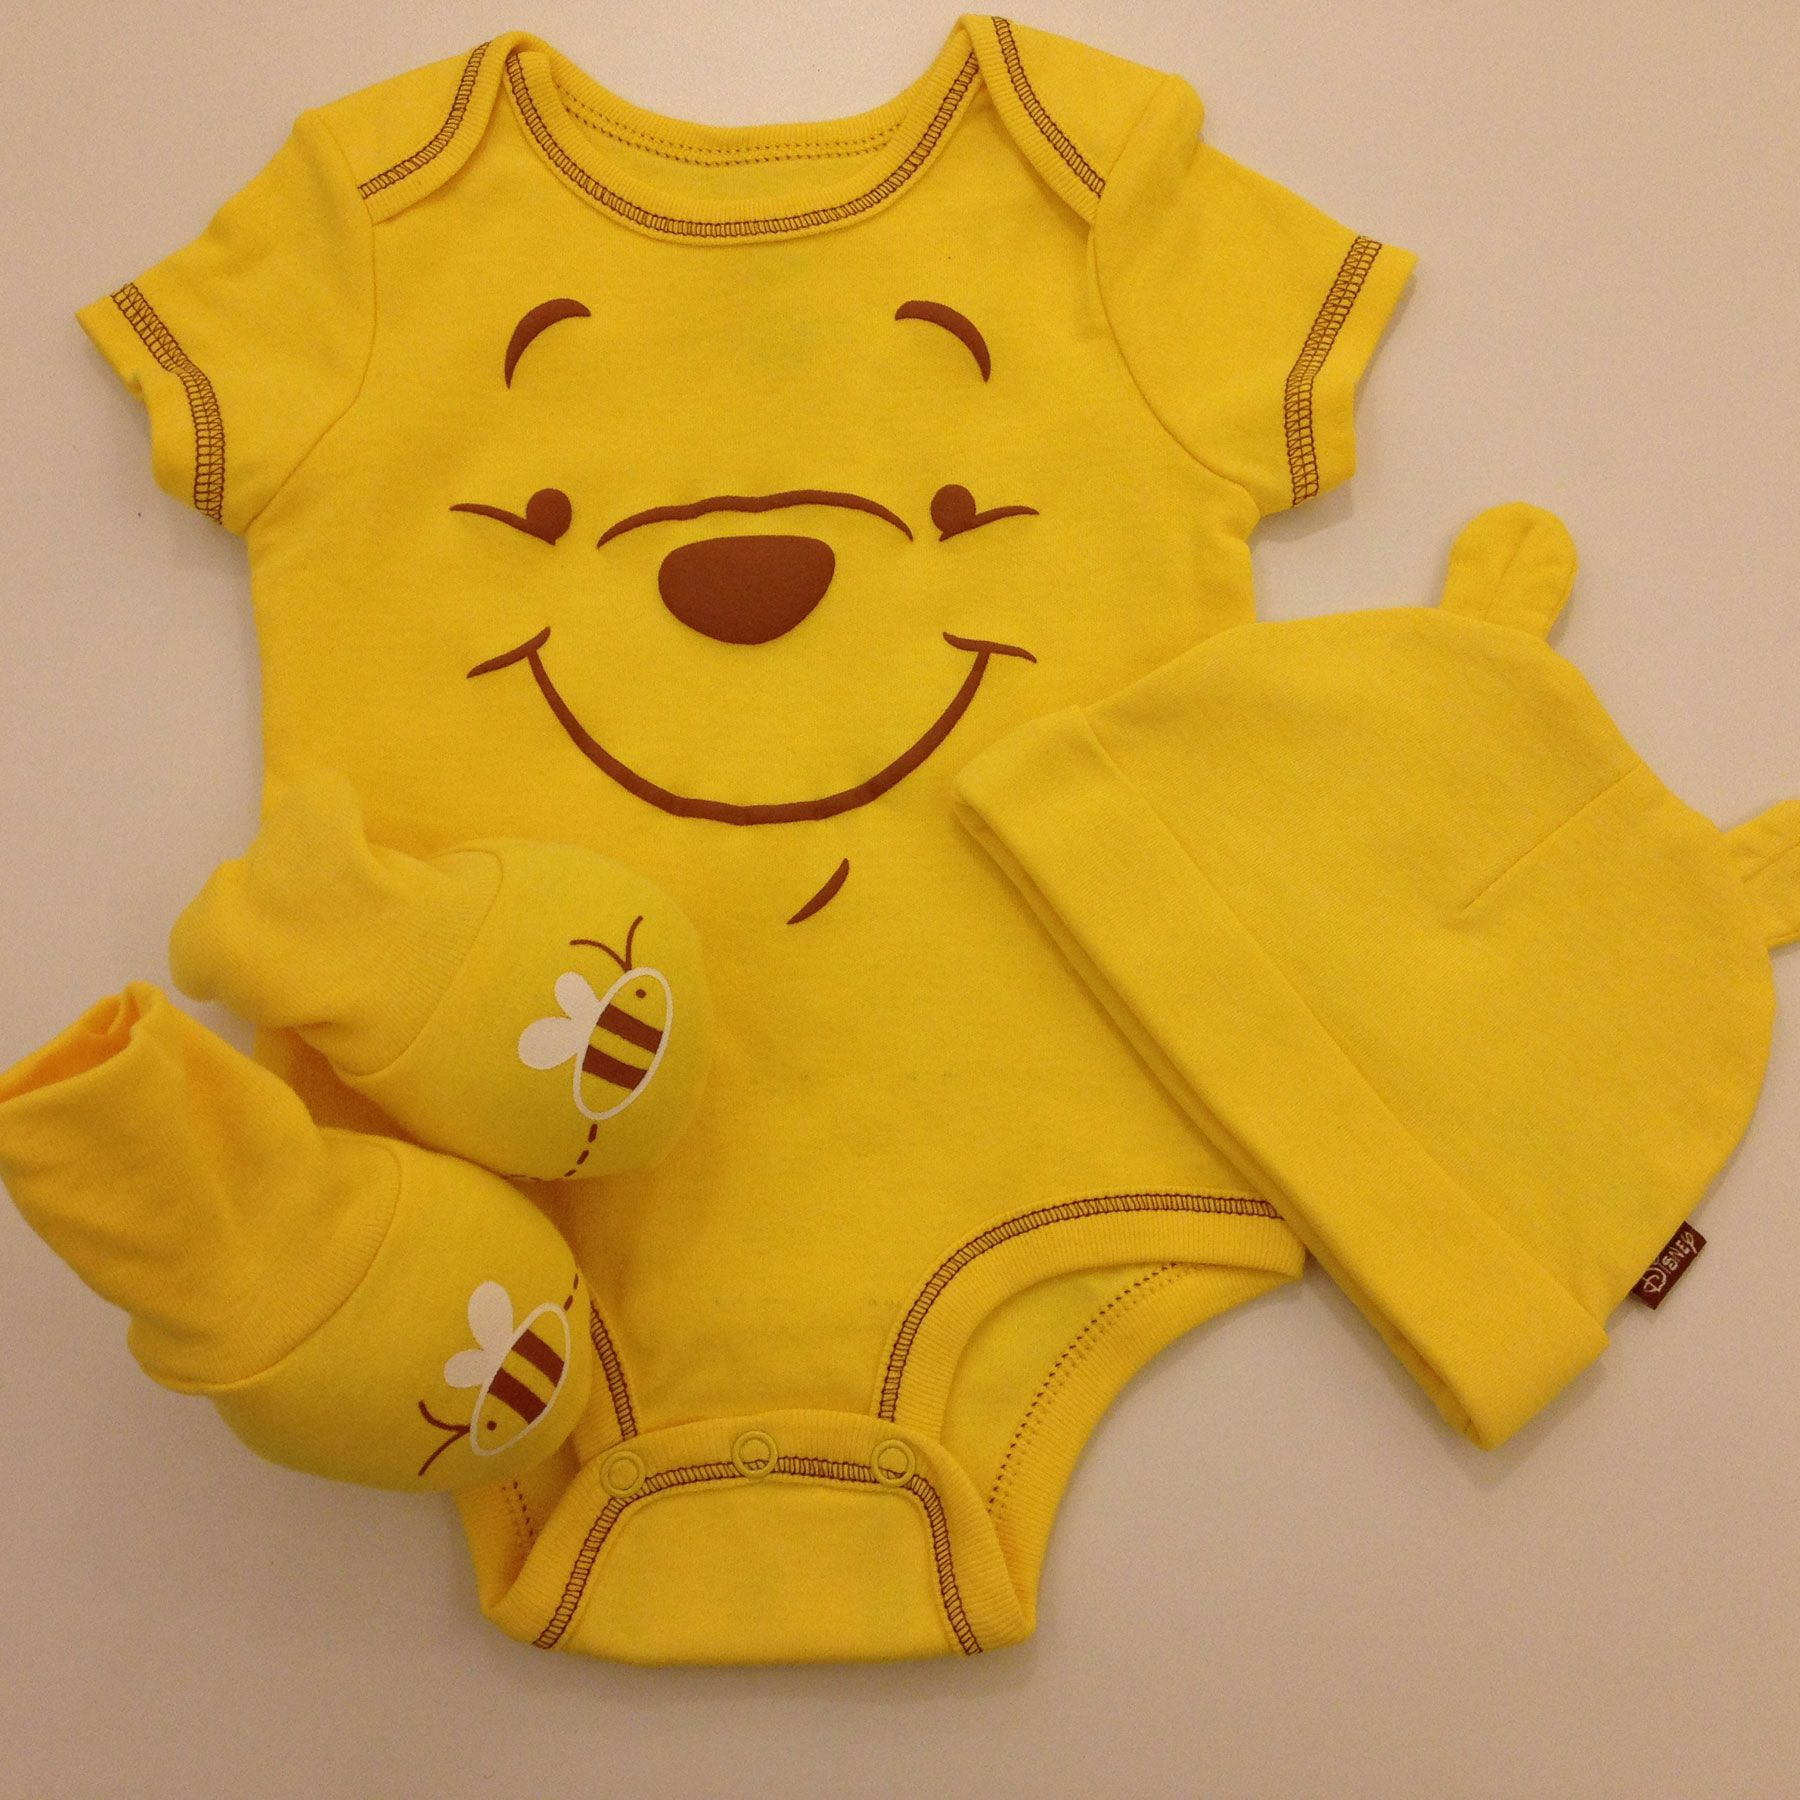 DISNEY WINNIE THE POOH 3 PIECE BABY OUTFIT SIZE NB 3 6 9 MONTHS NEW!